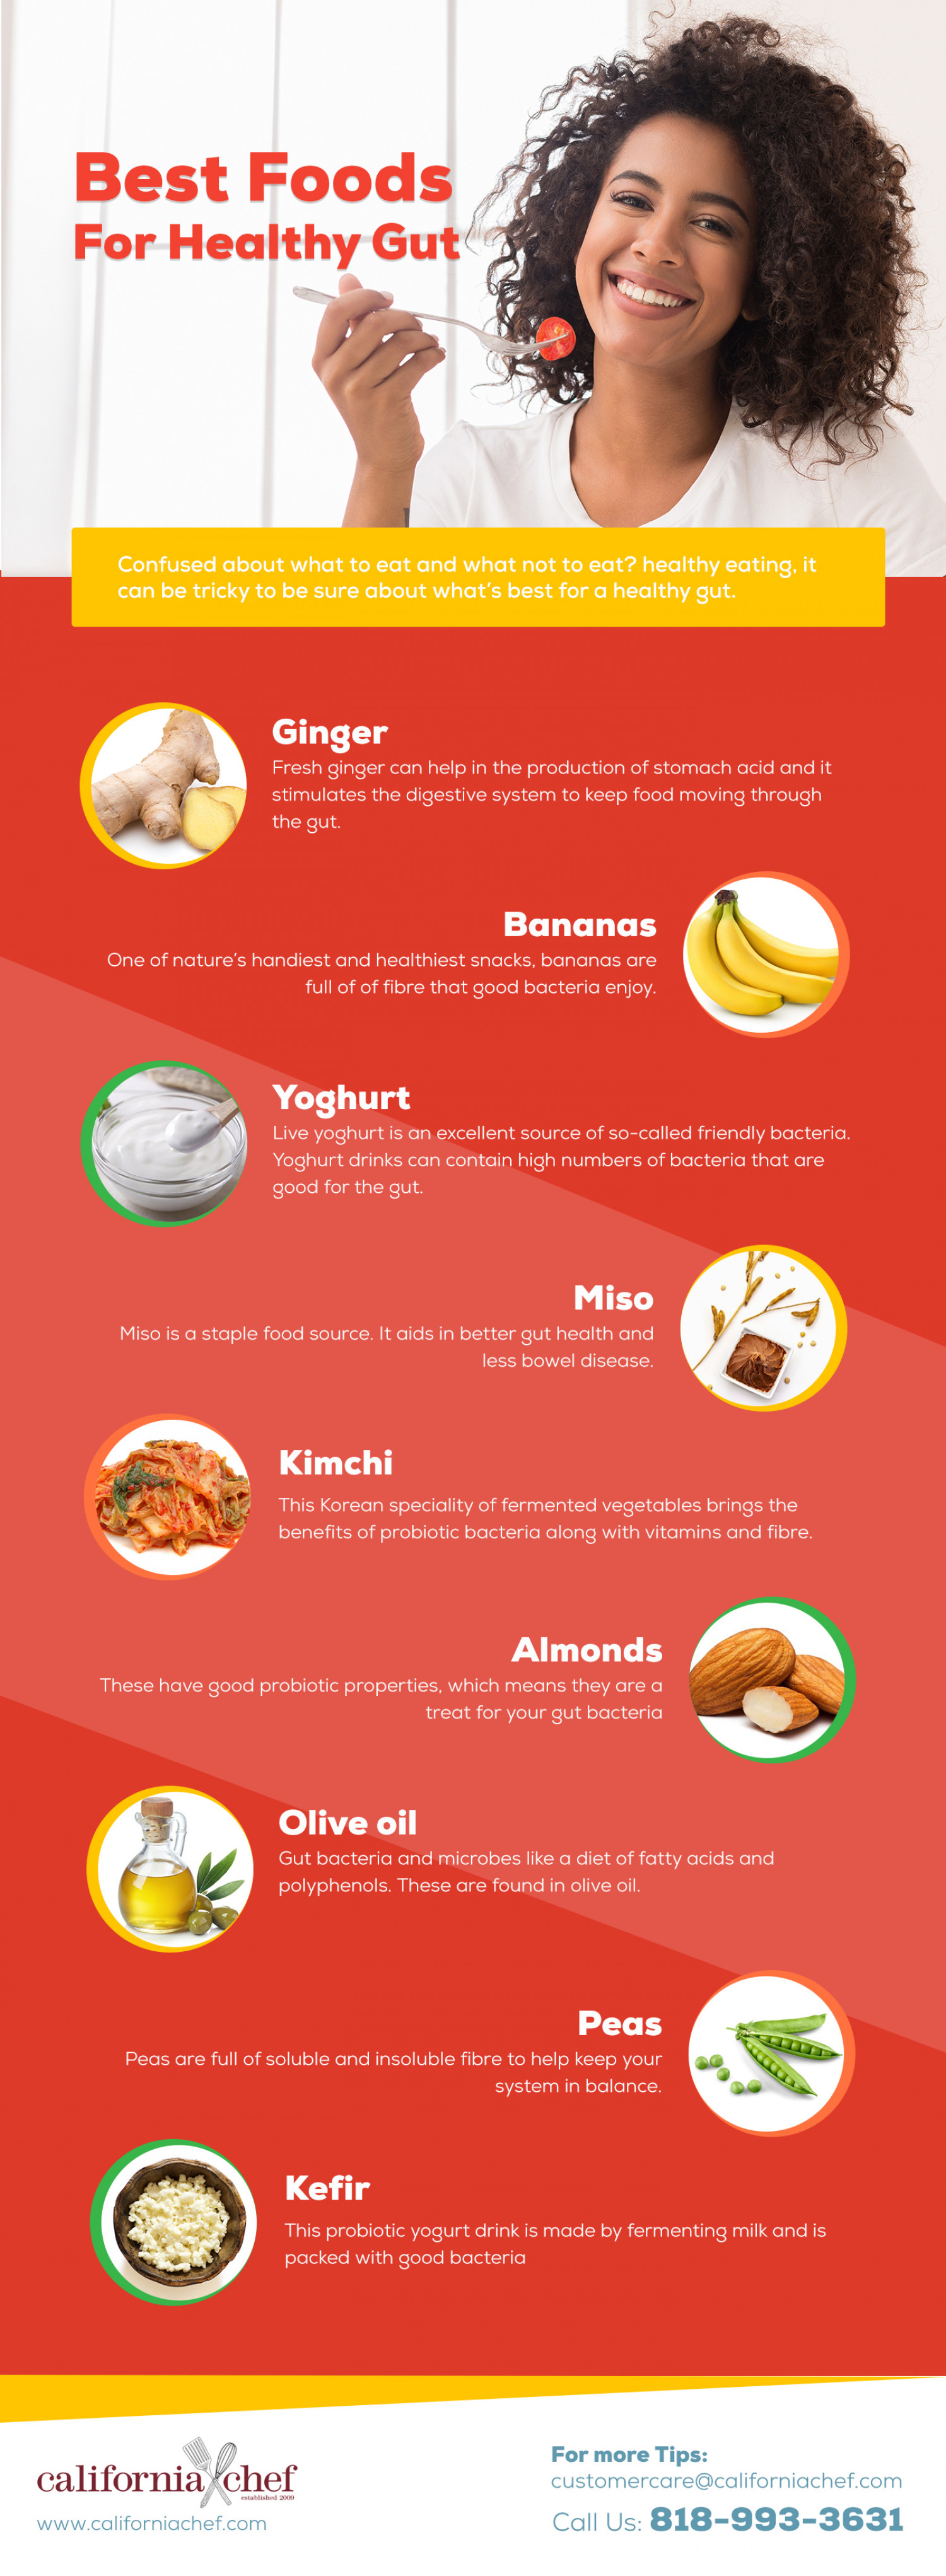 Best food for Healthy Gut Infographic